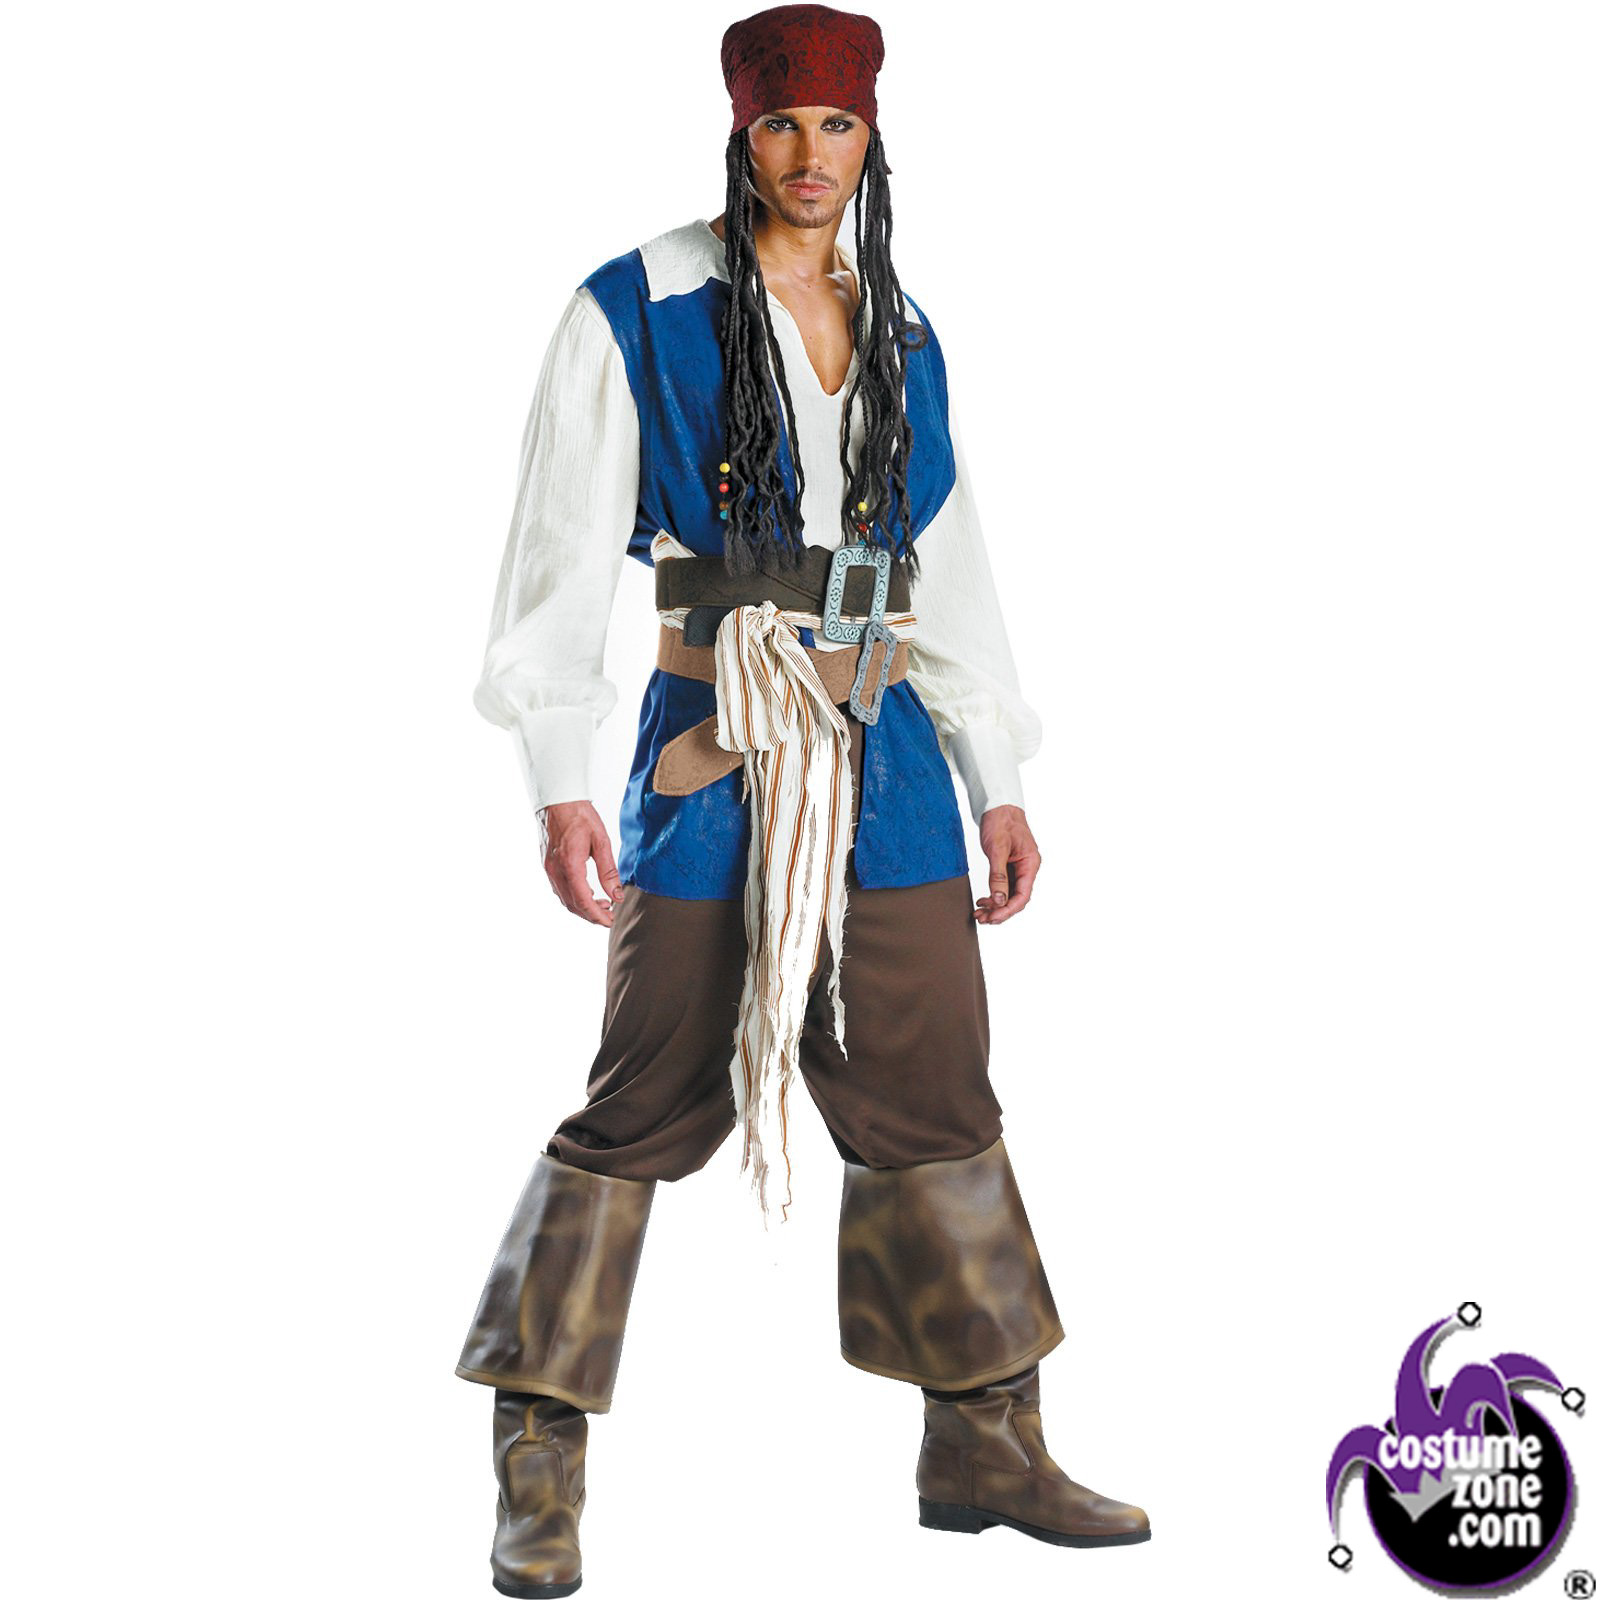 Halloween Costumes | Halloween Disney's Pirates of the Caribbean - Captain Jack Sparrow Quality Pirate Costume (Men's Adult Regular Size 42-46)